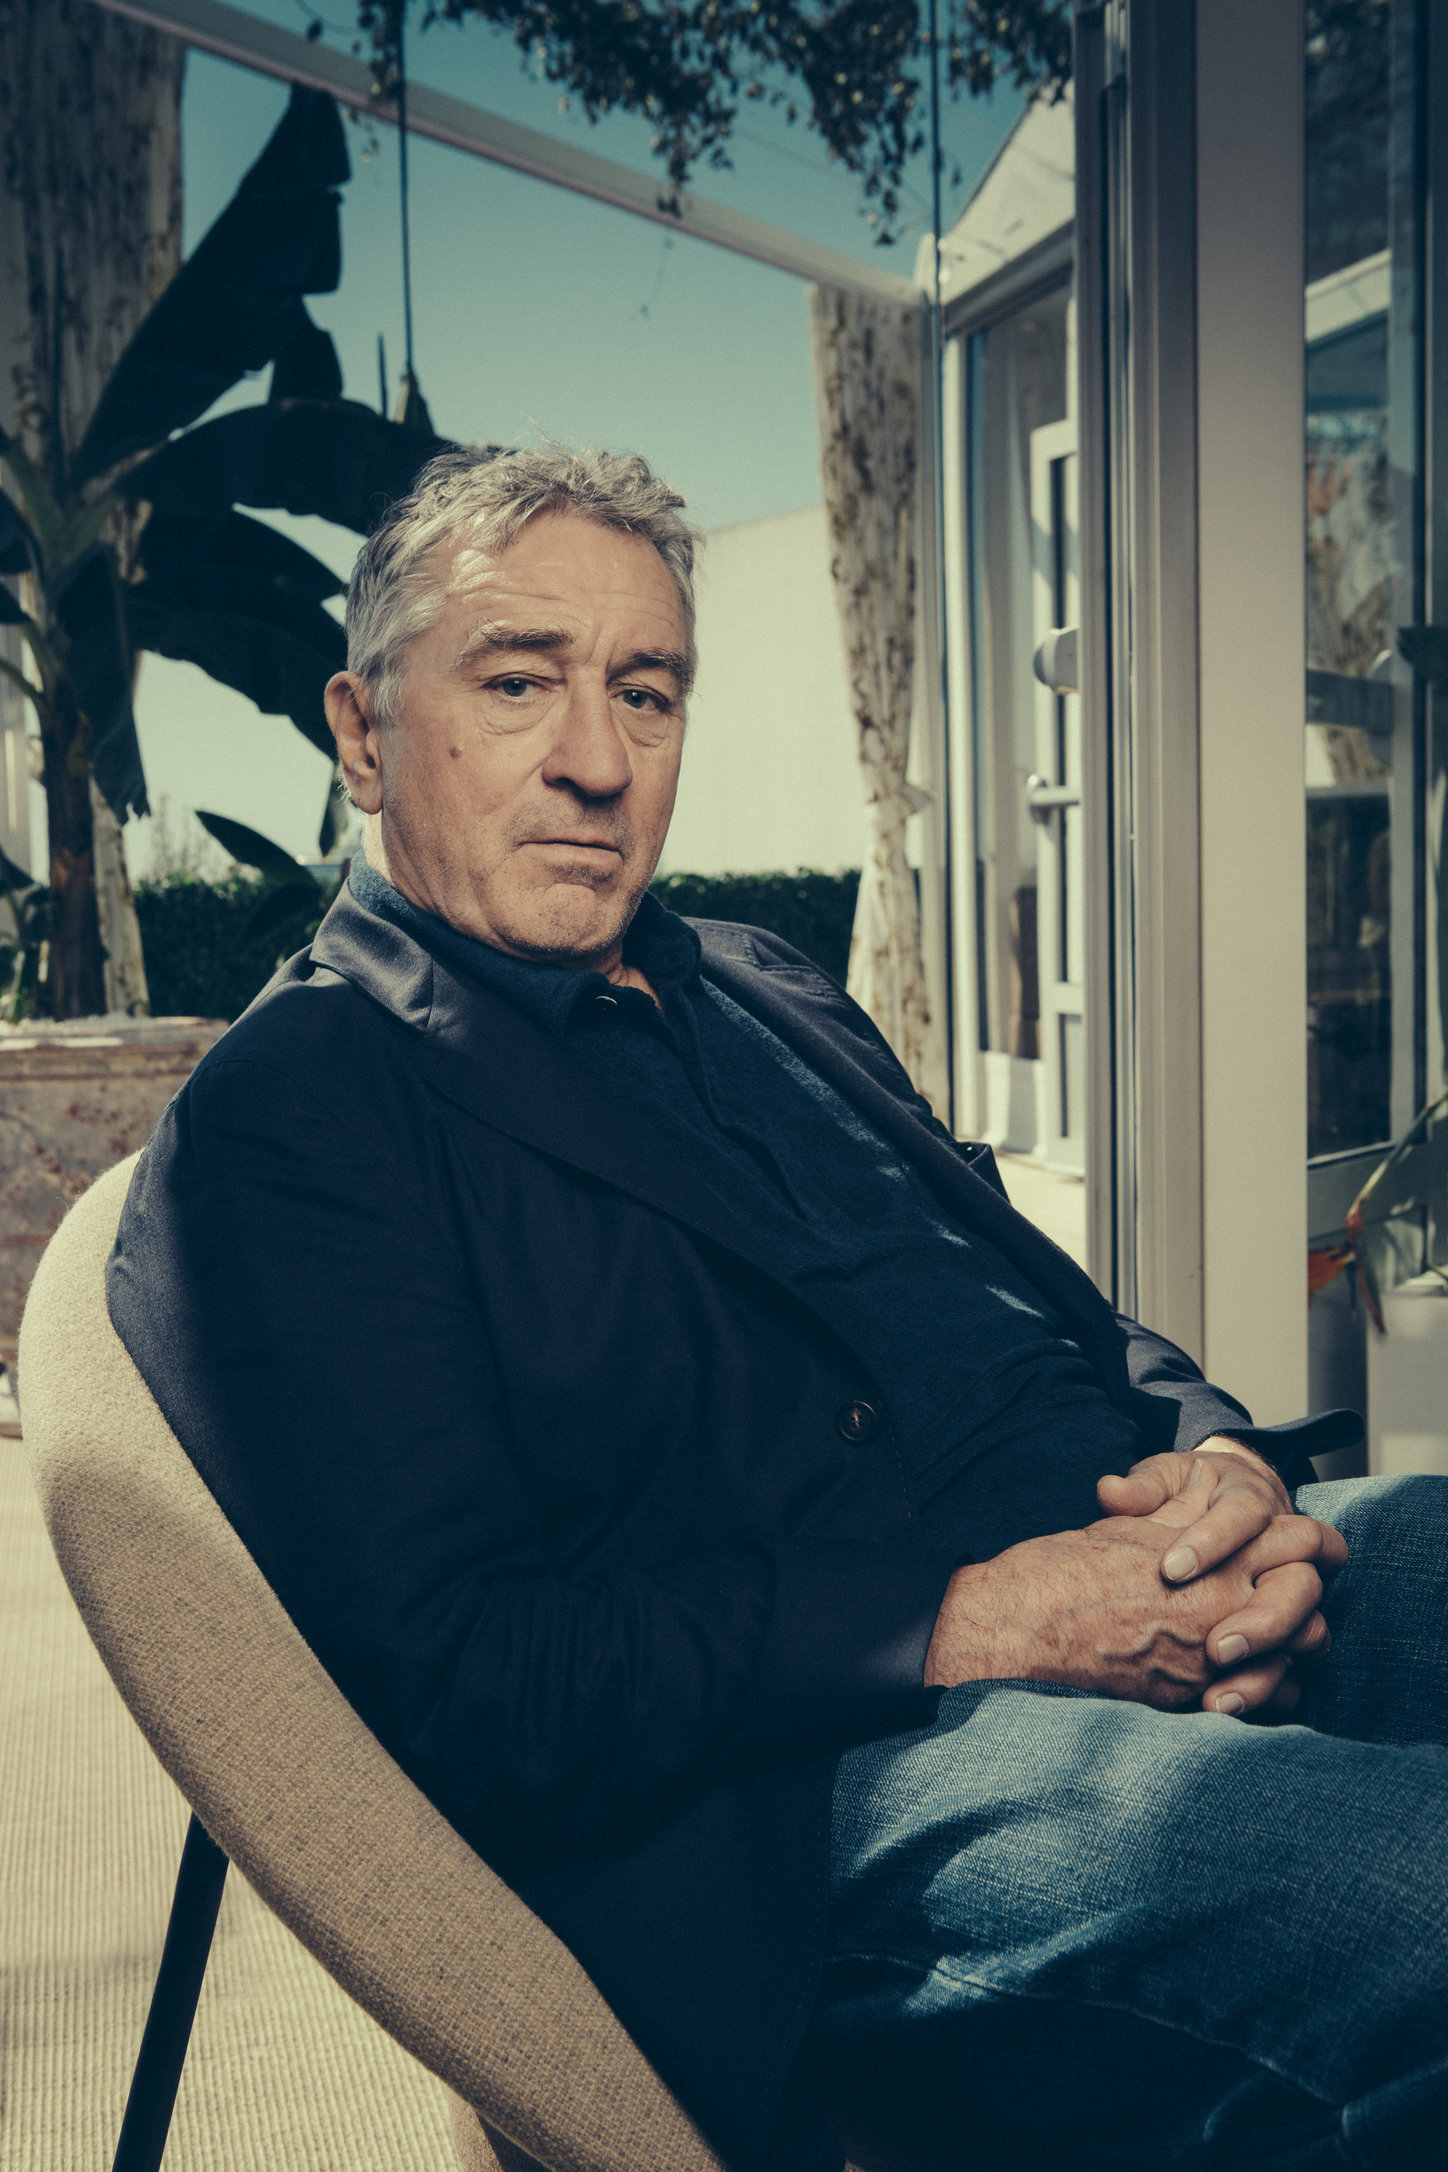 robert de niro, actor